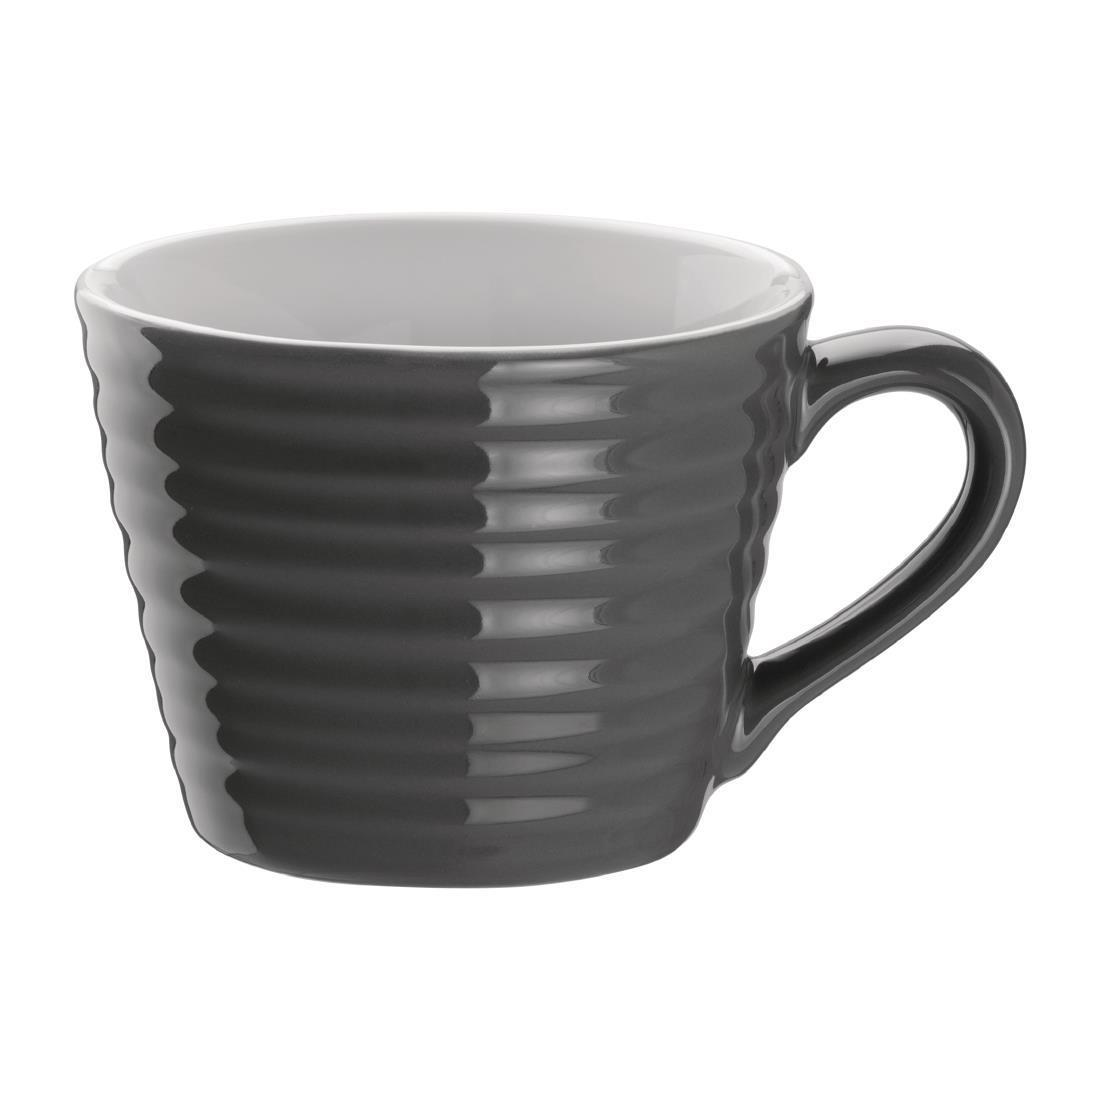 Olympia Caf?? Aroma Mugs Charcoal 230ml